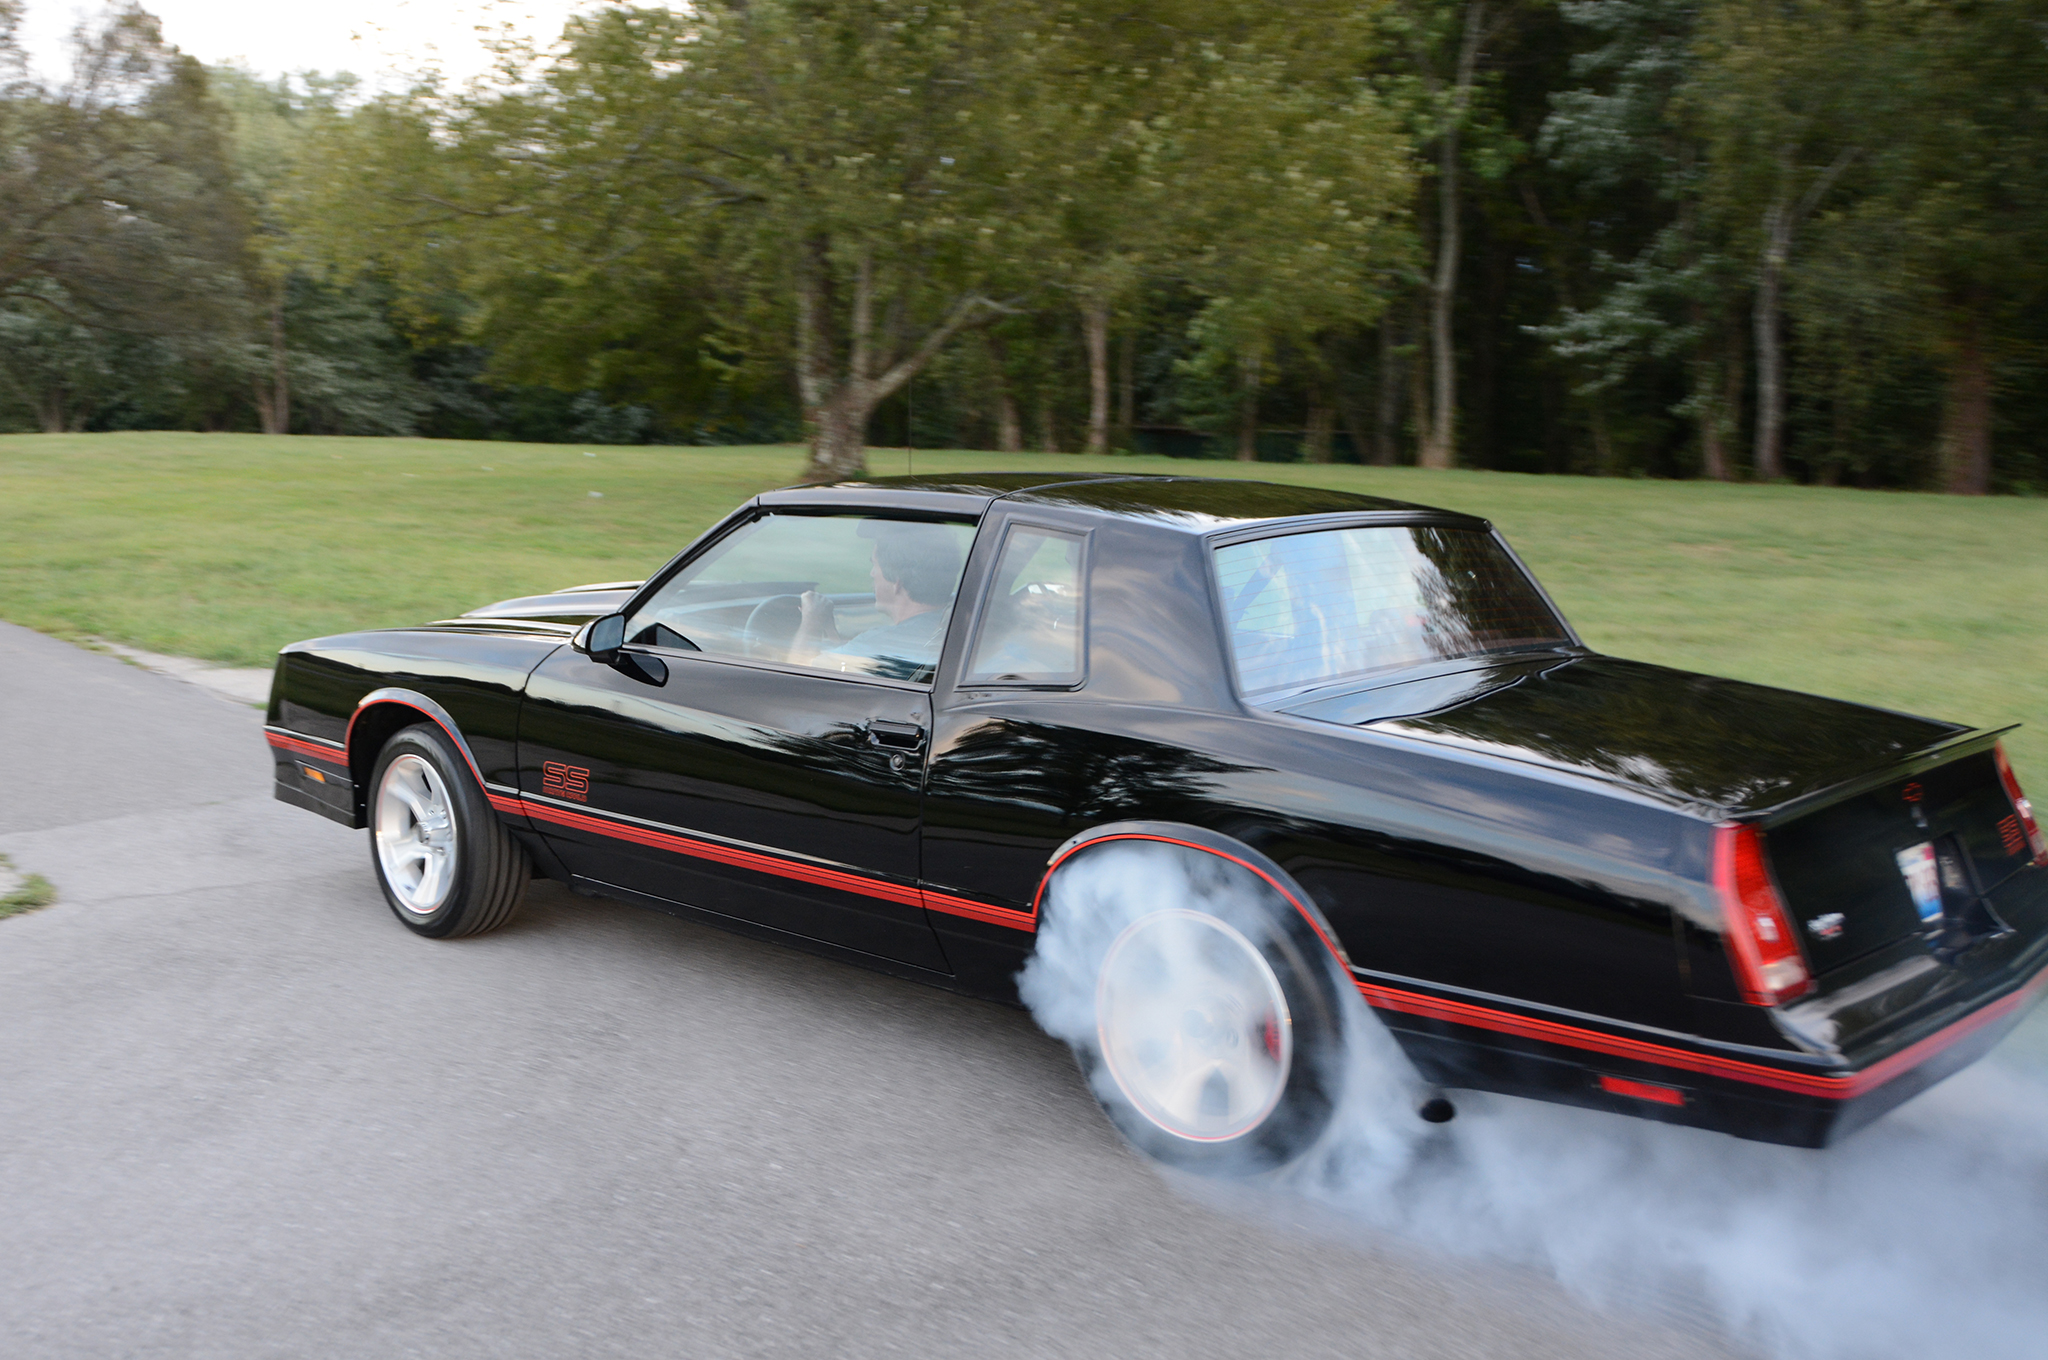 Meet The 1988 Monte Carlo Ss Chevrolet Should Have Built